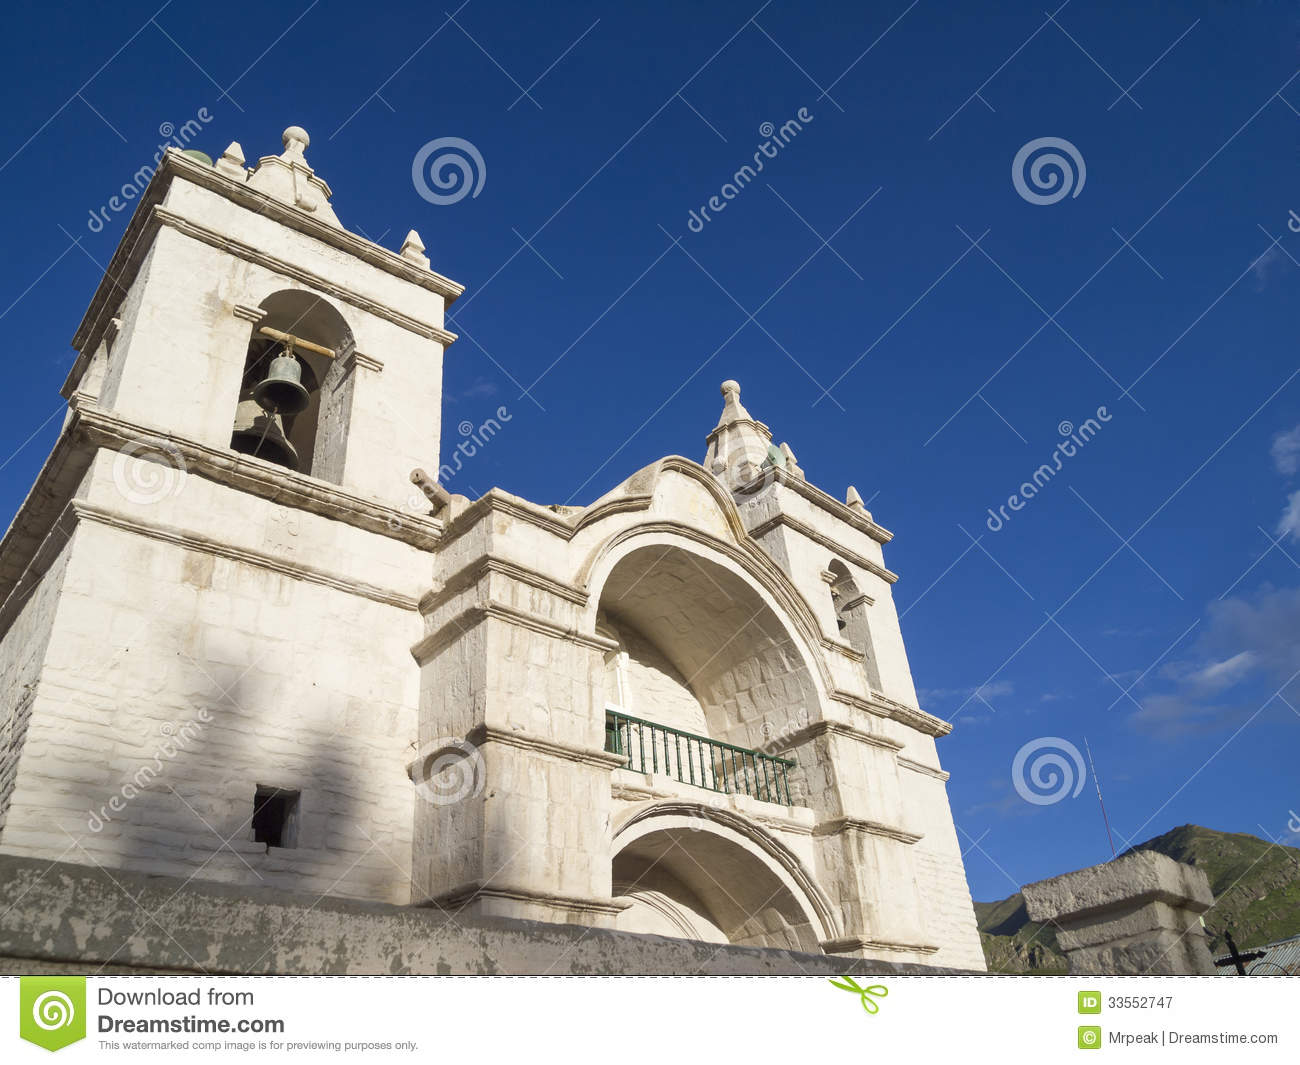 Cathedral of Chivay, Peru